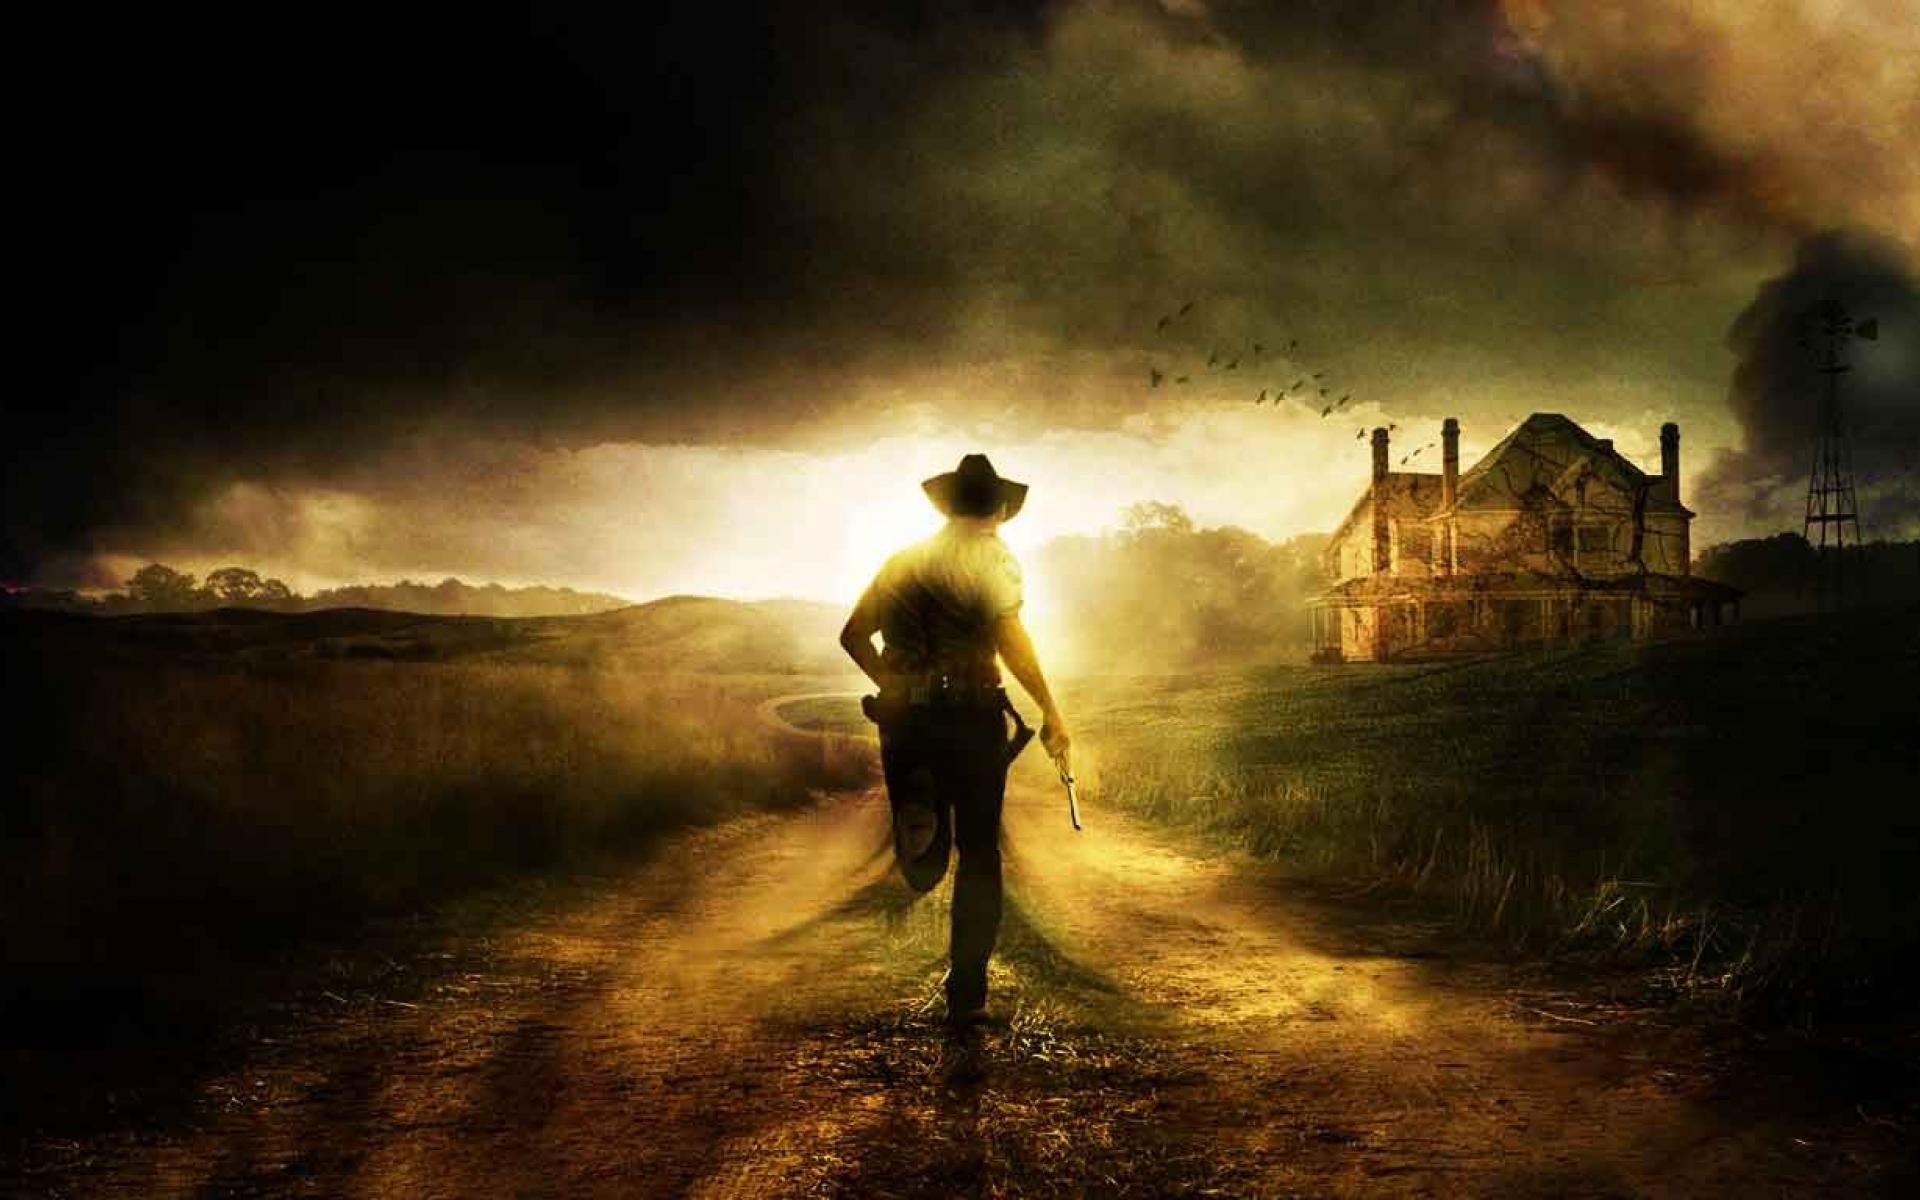 the walking dead desktop background hd deskbg download the walking